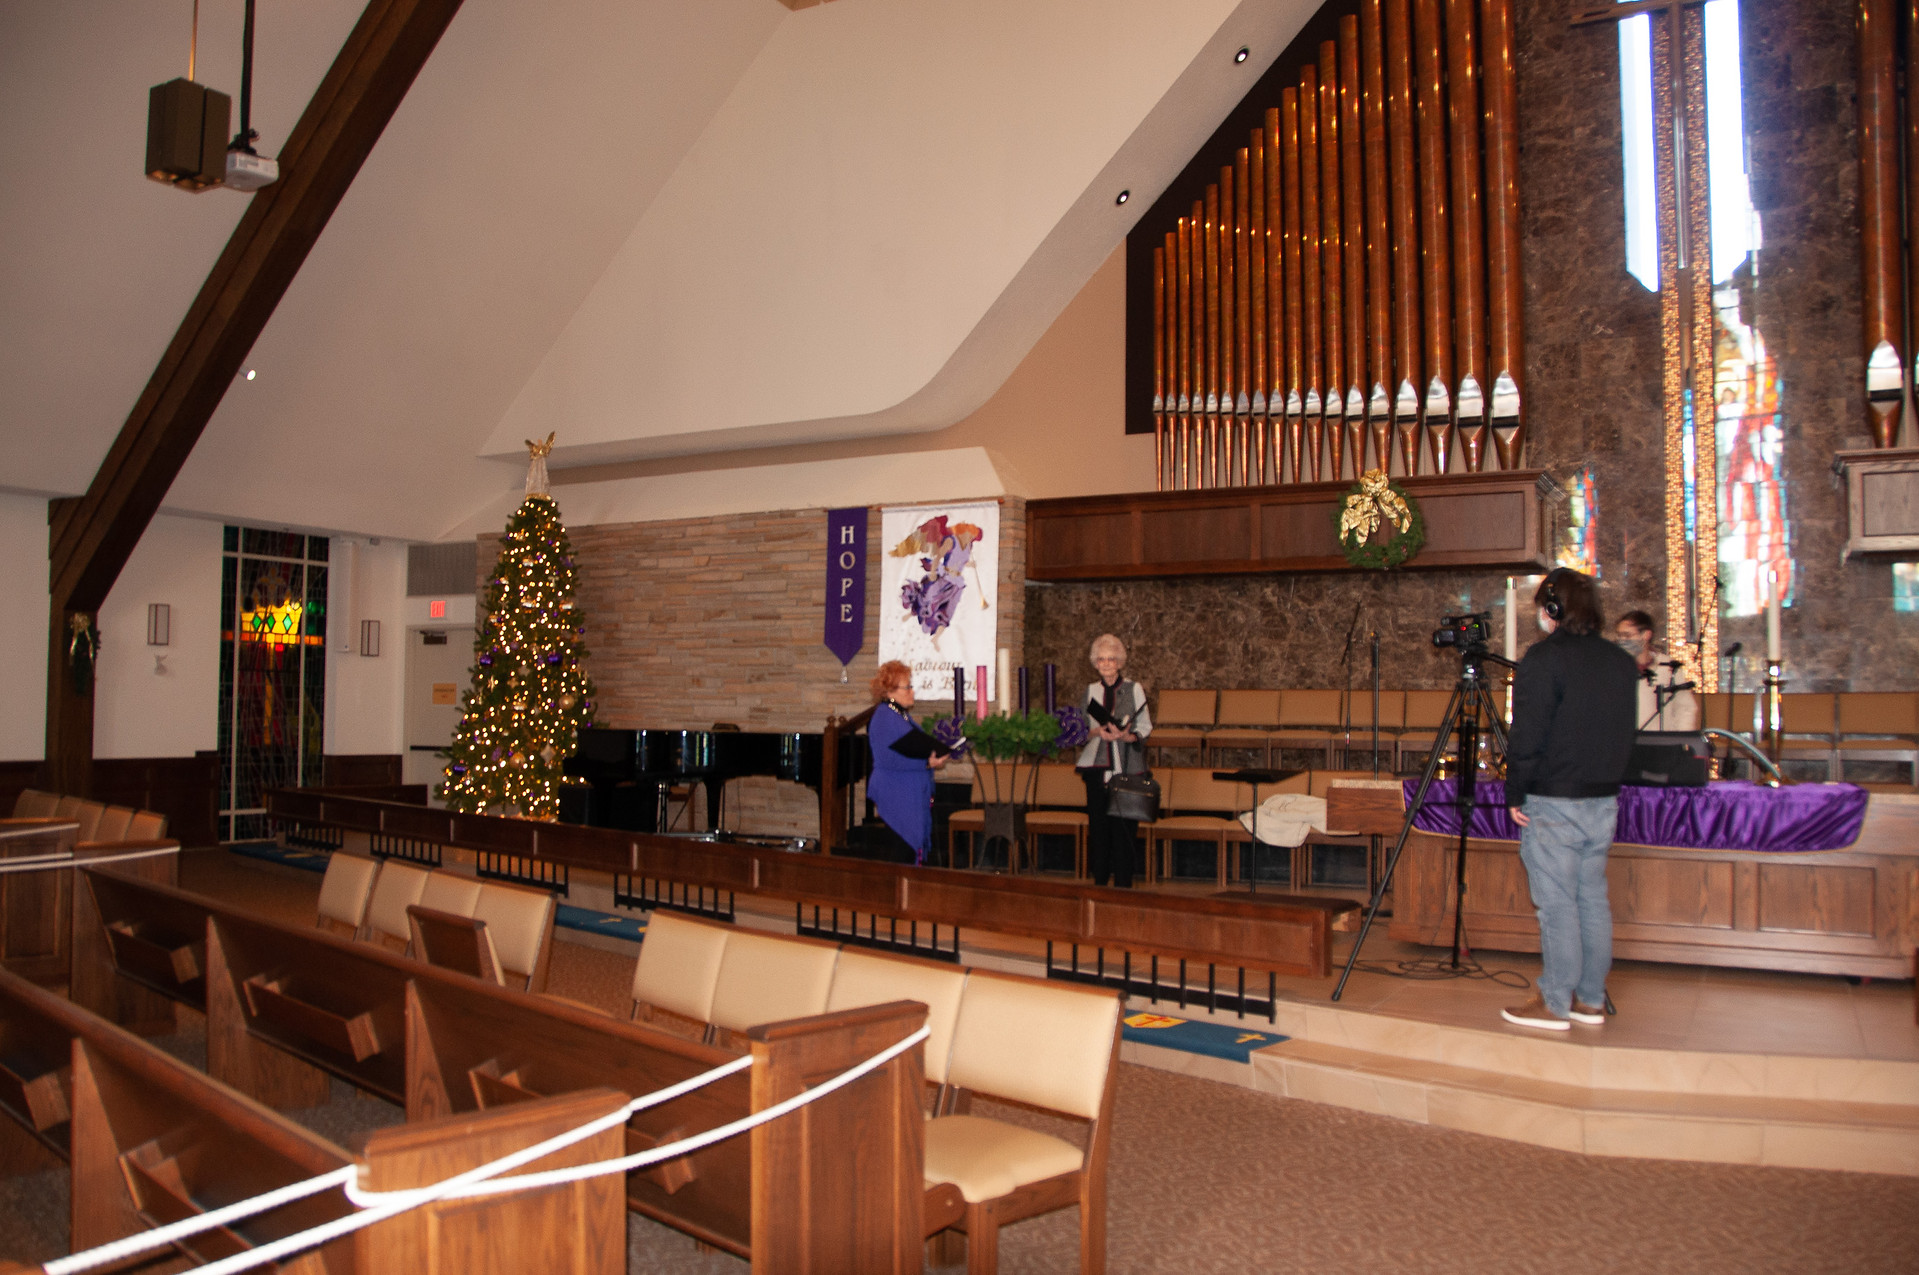 And see ... it's Christmas in the Sanctuary! It's About to Happen!